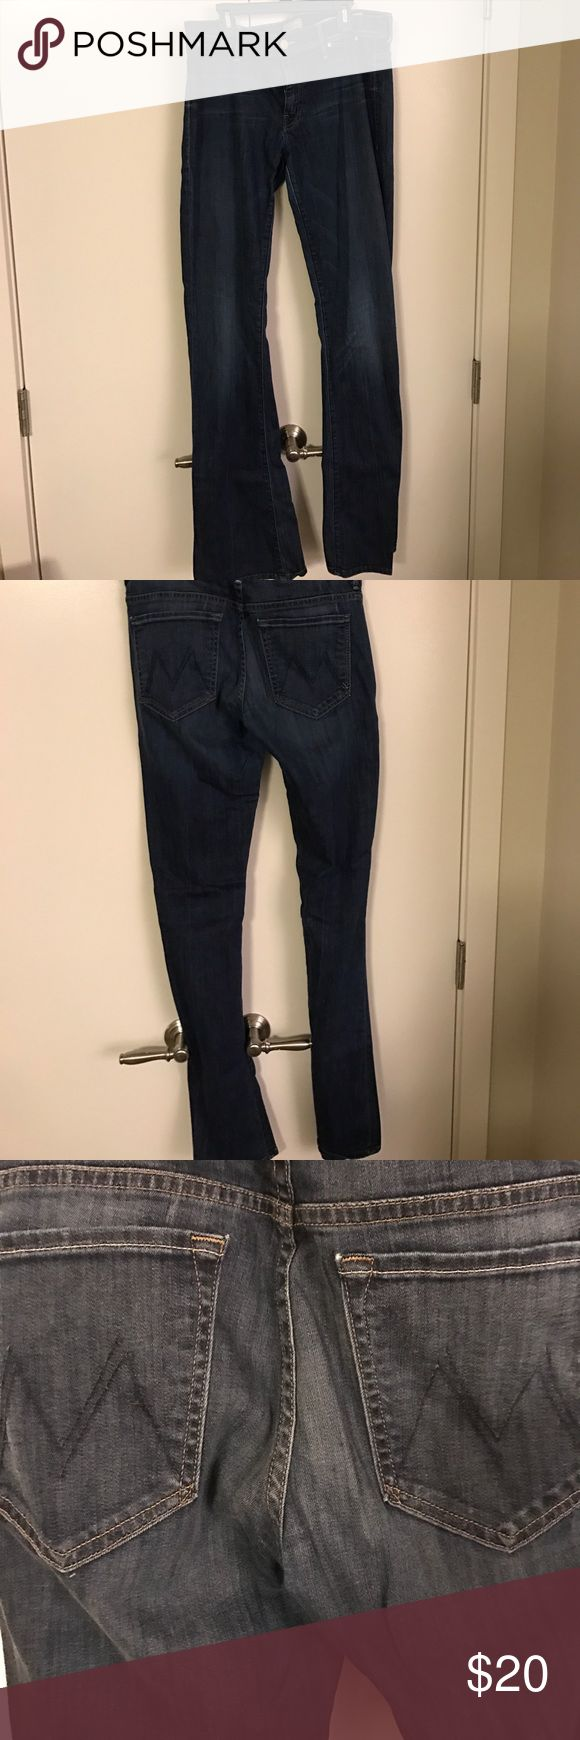 Not your mothers jeans jean Not your mothers brand flare jean. Slight stretch. Size 31 with 34 inch inseam. Worn less than 5 times. Very flattering. Jeans Flare & Wide Leg